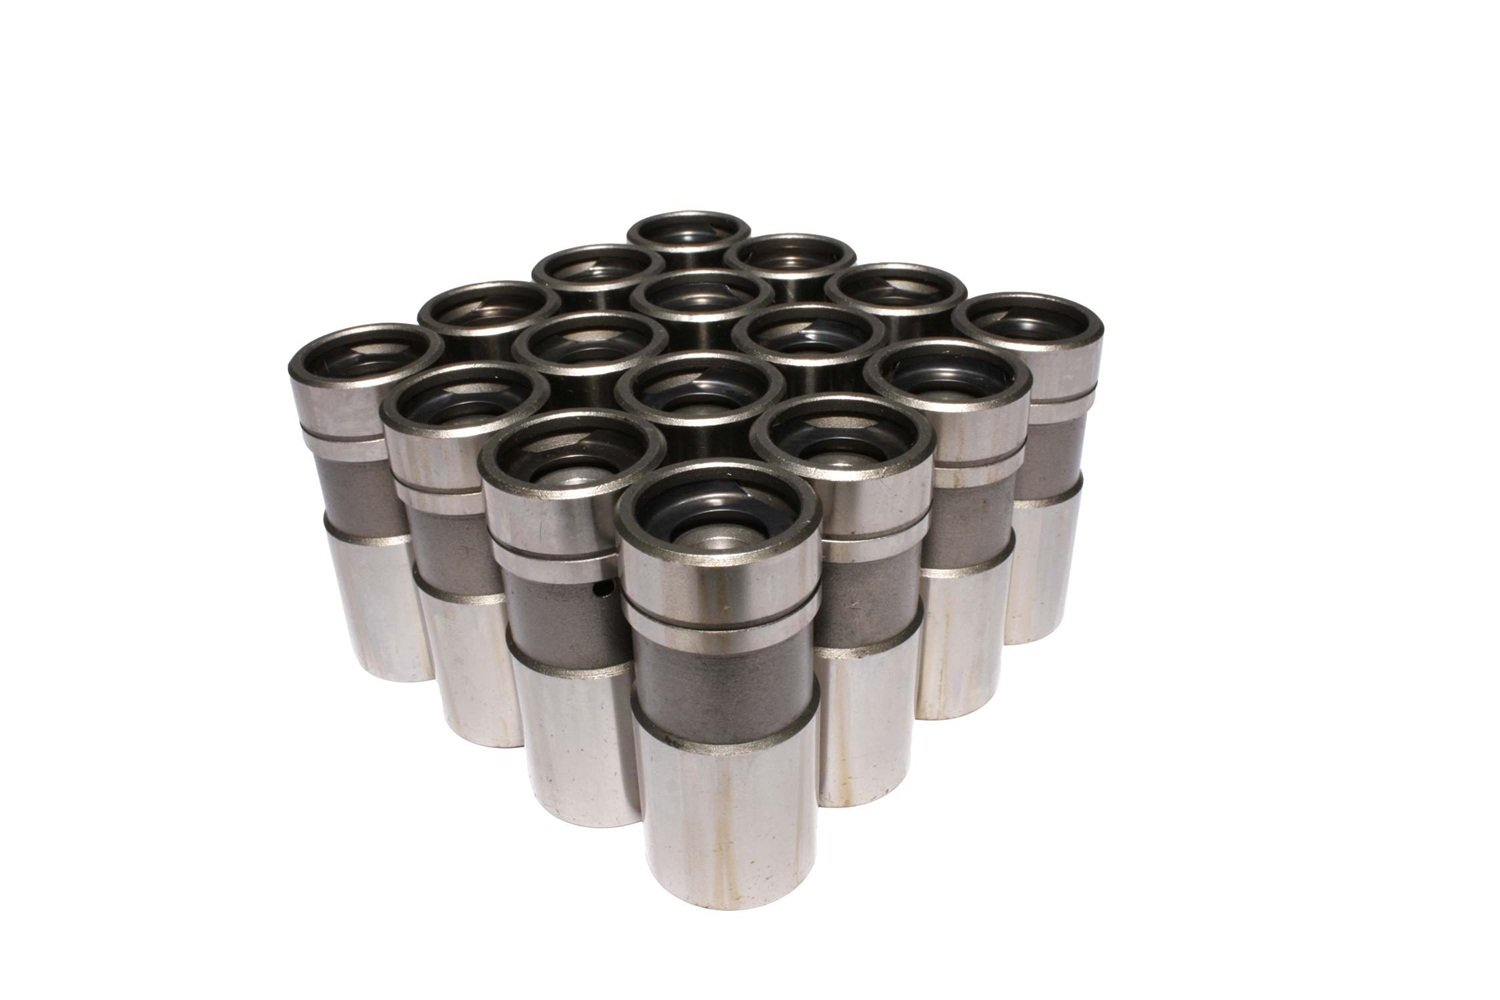 Competition Cams 862-16 Pro Magnum Hydraulic Lifters for 289-302 Small Block, 351 Windsor, Cleveland, and 429 460 Ford COMP Cams